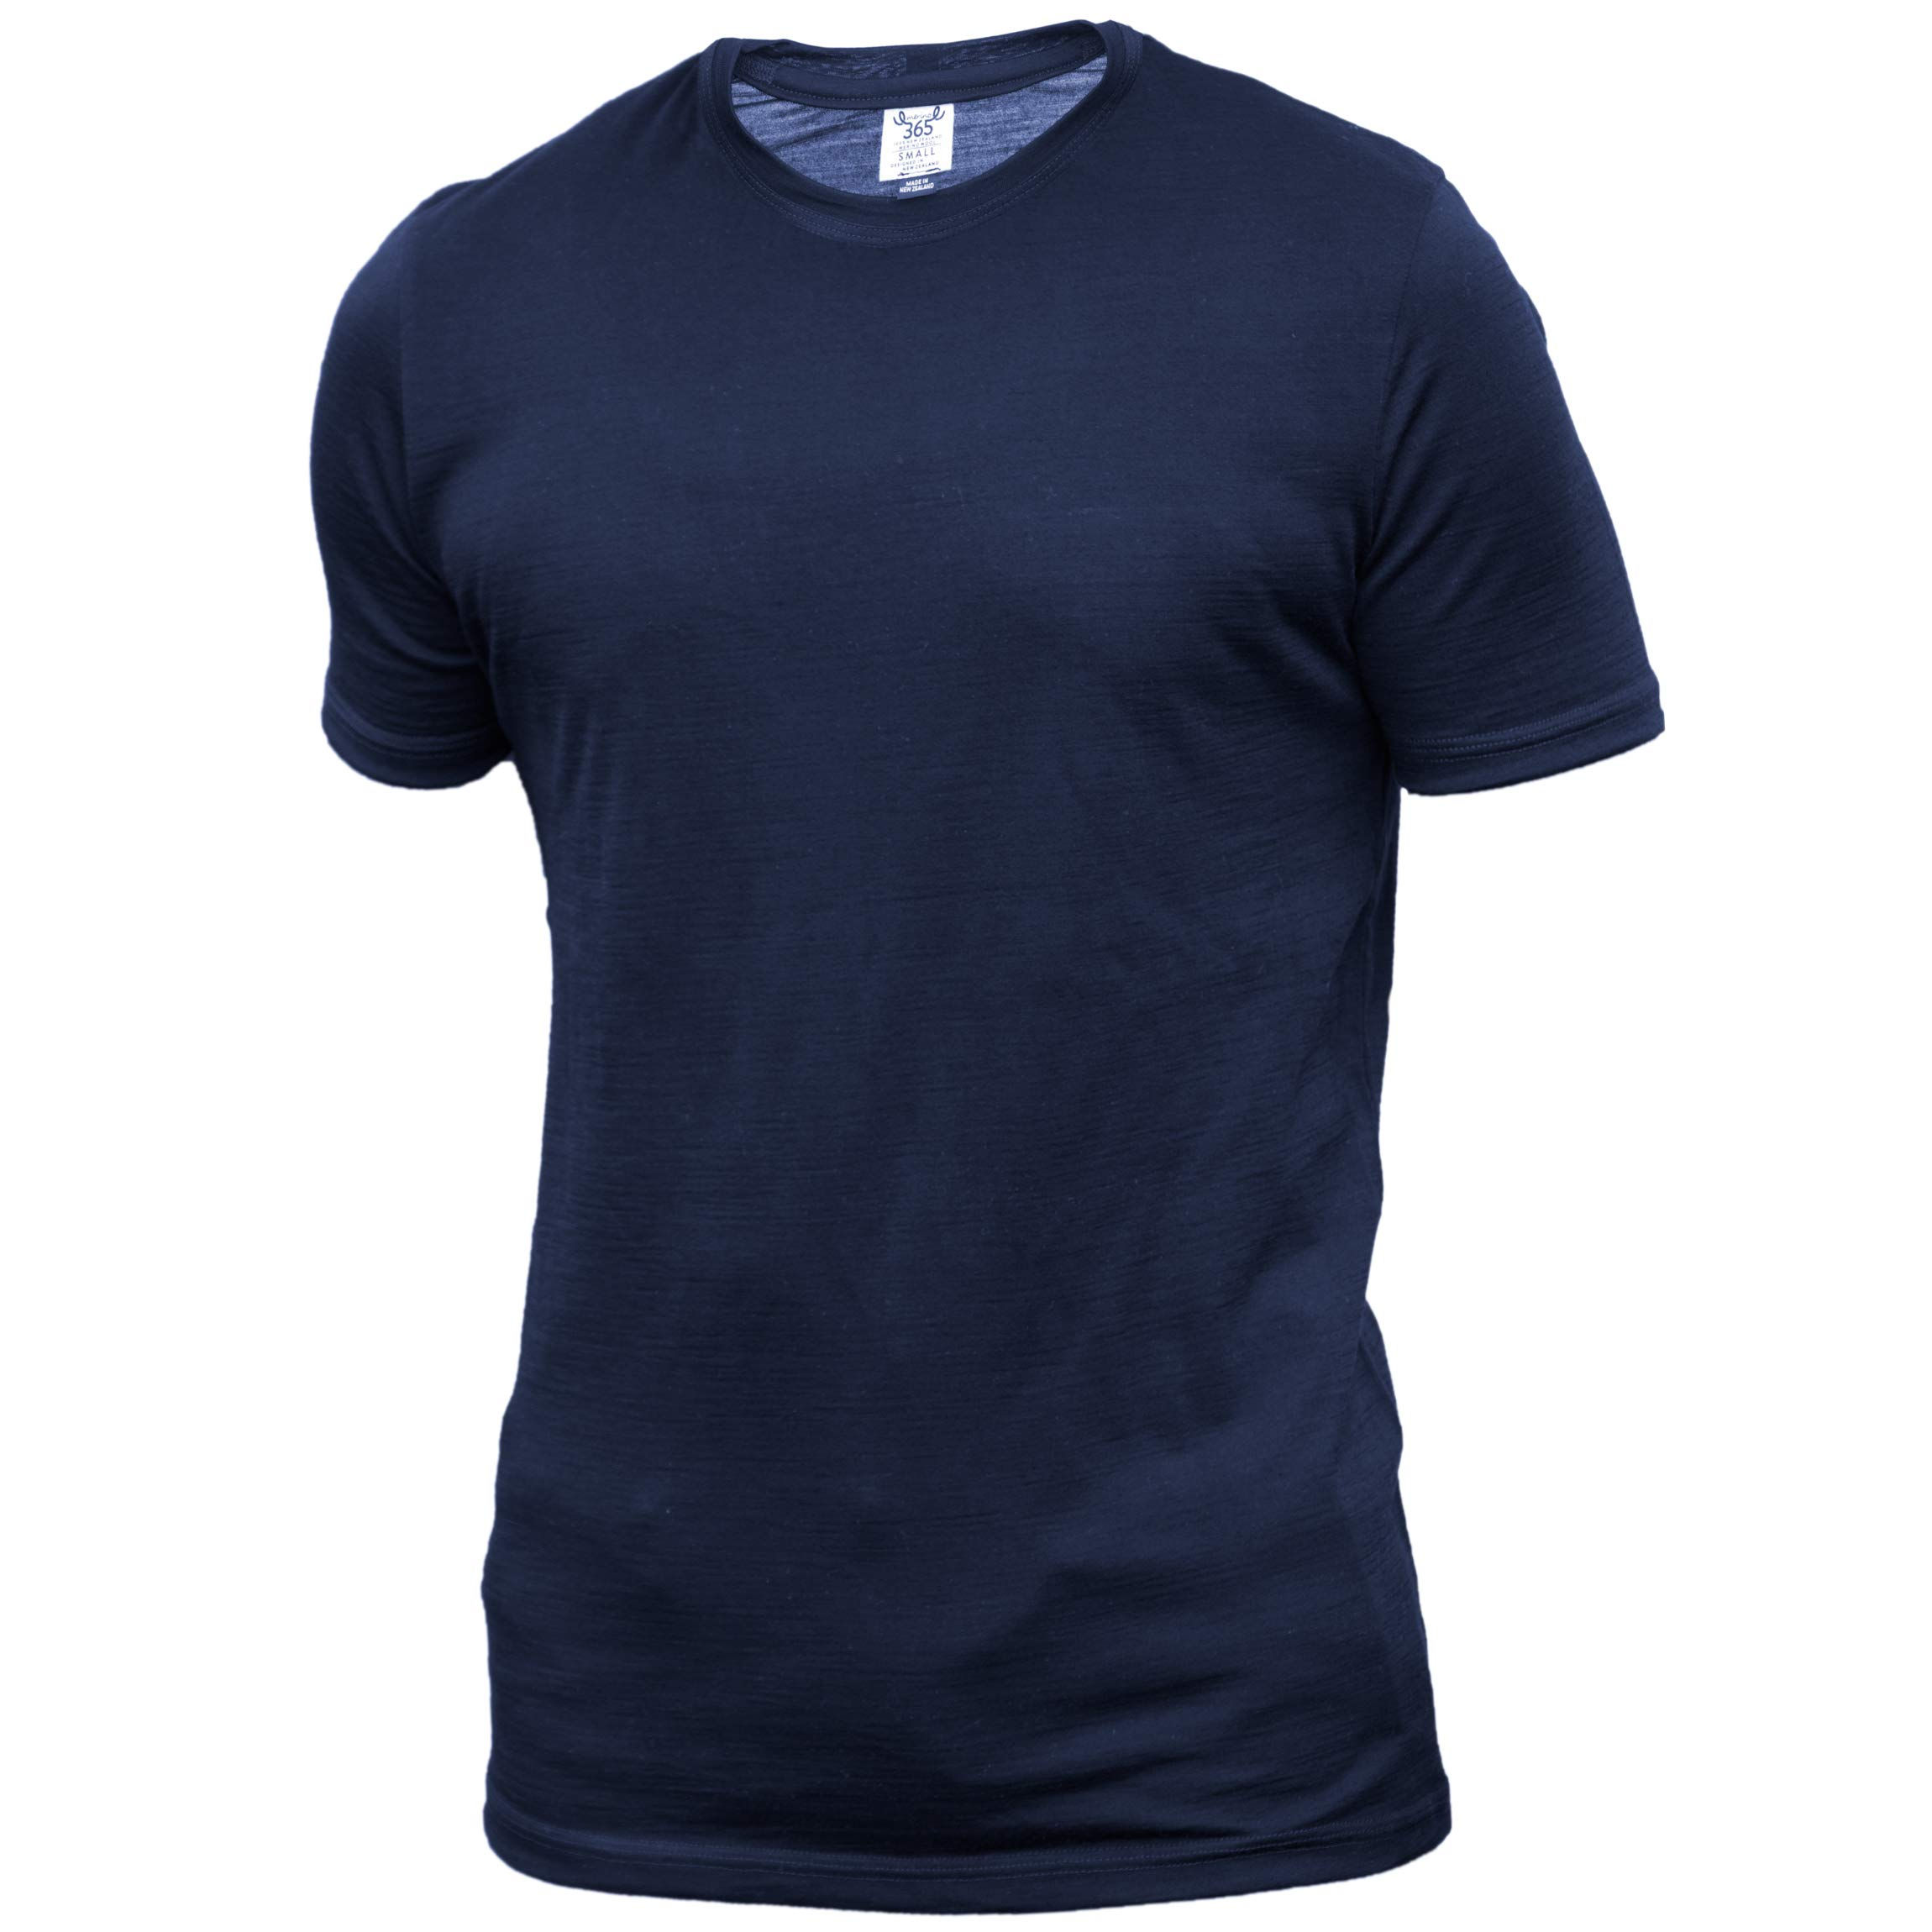 Merino 365 Men's Crew Short Sleeve Small, Navy by Merino 365